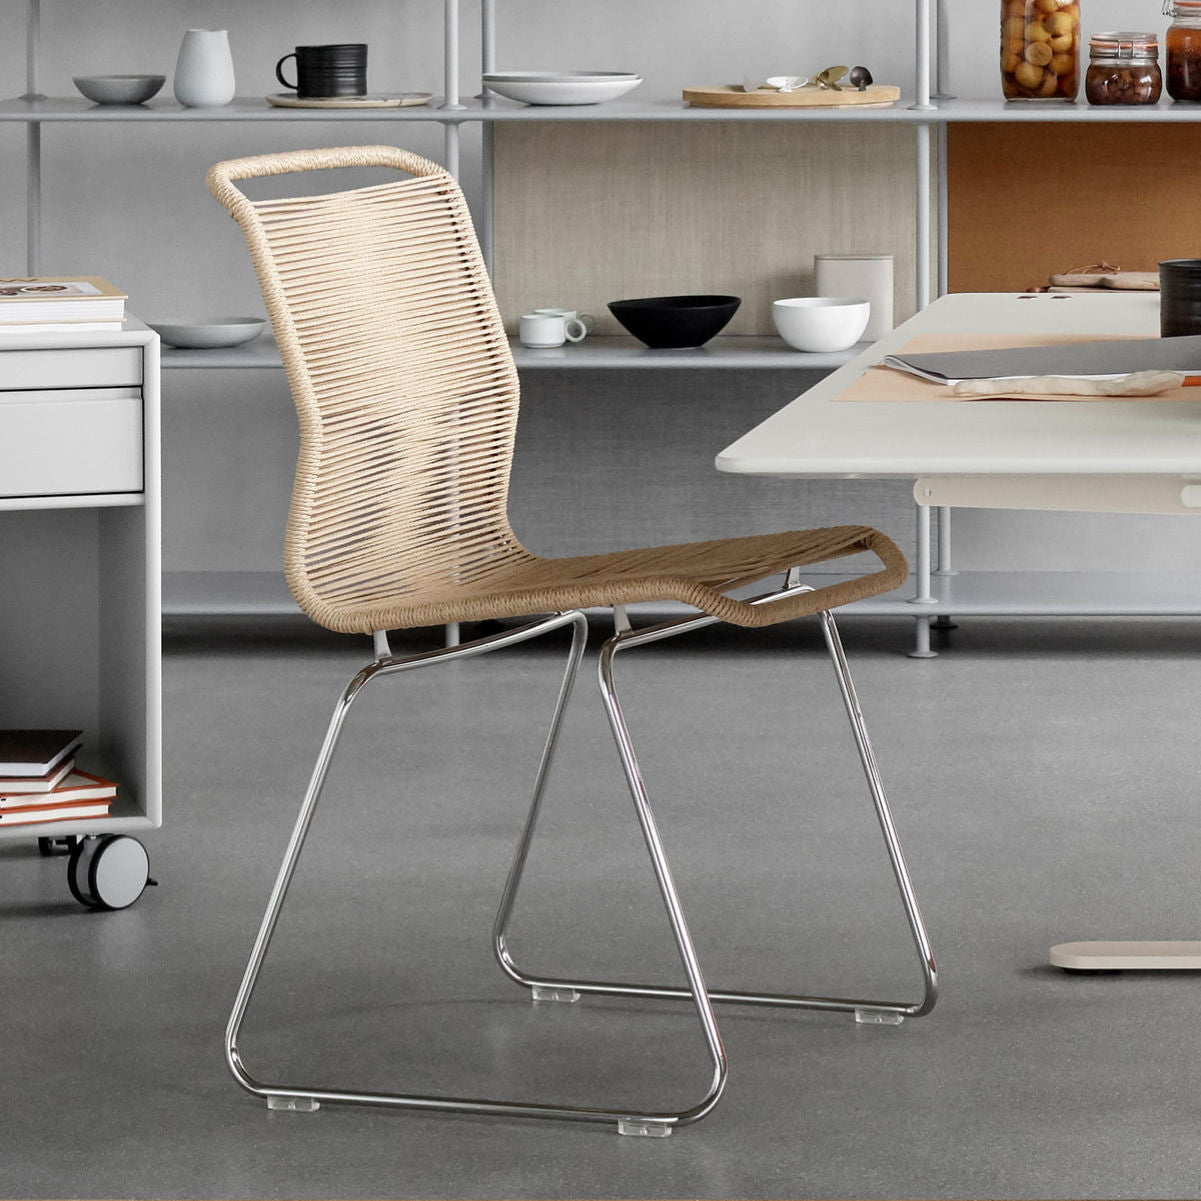 Montana Panton One dining chair